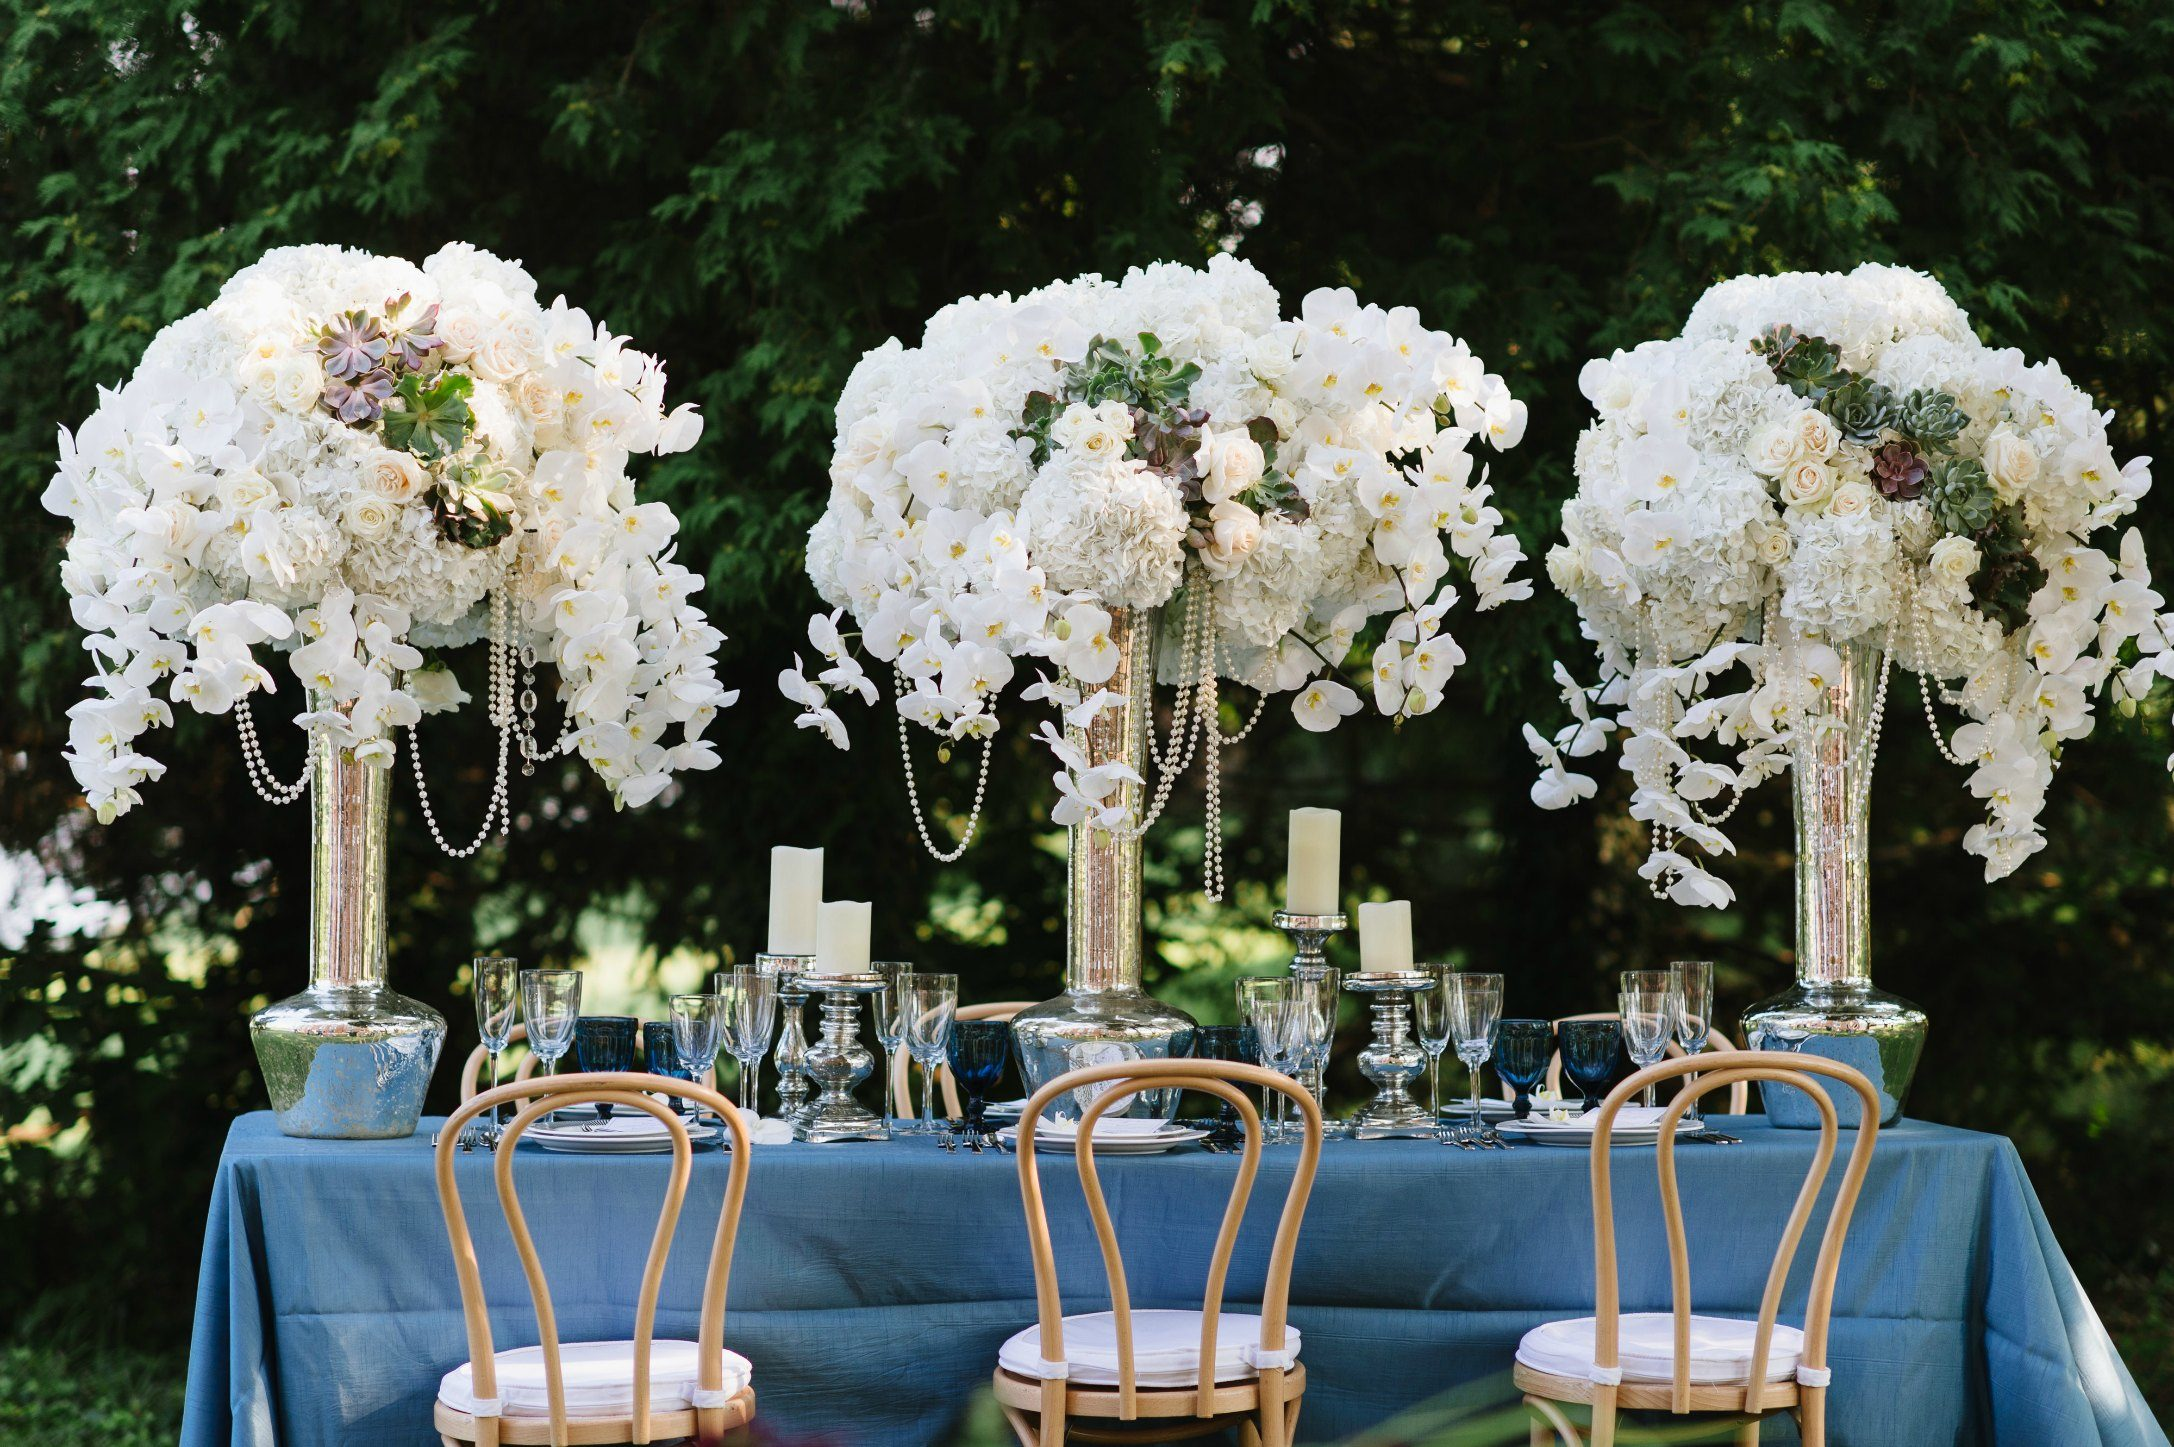 Luxe Shore Wedding | Dee Kay Events ǀ Downtown Annapolis, MD | Carroll House I Floral Arrangements